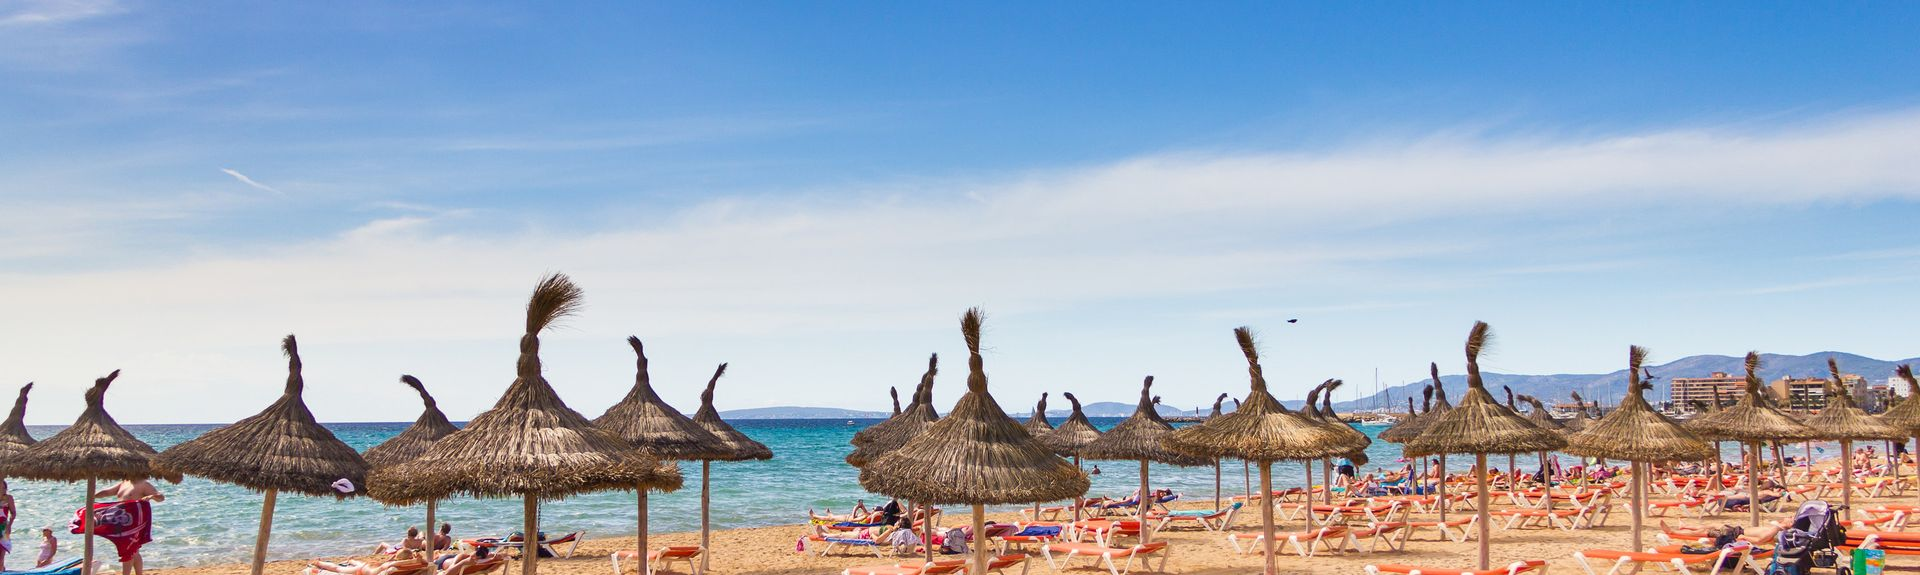 Platja de Palma, Palma, Balearic Islands, Spain